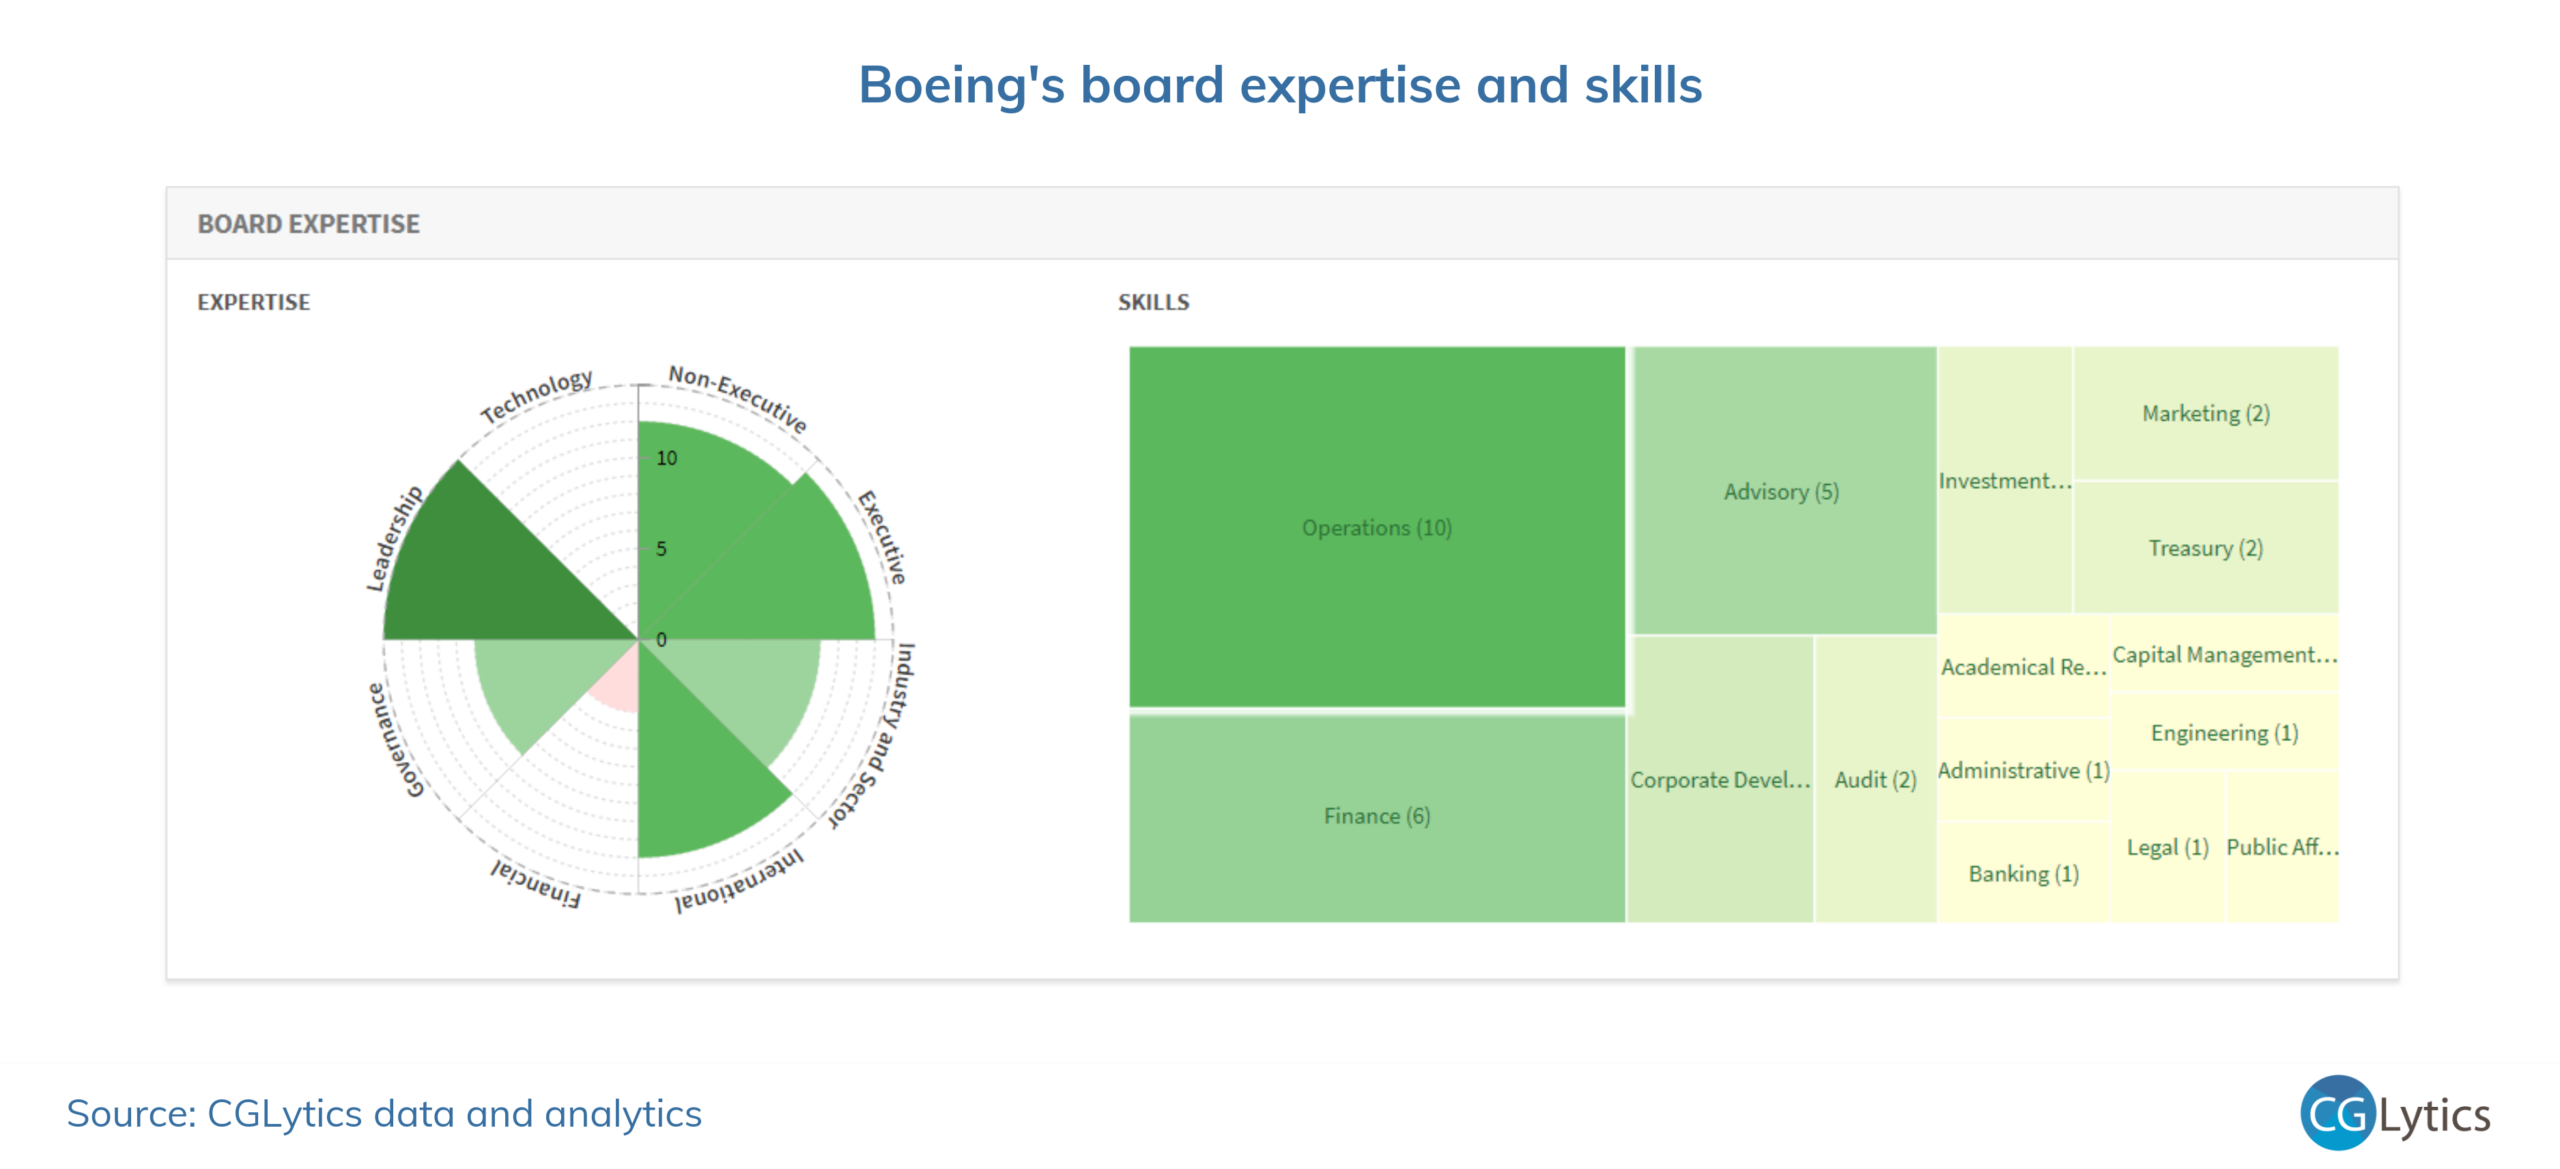 Skills and expertise on Boeing's board